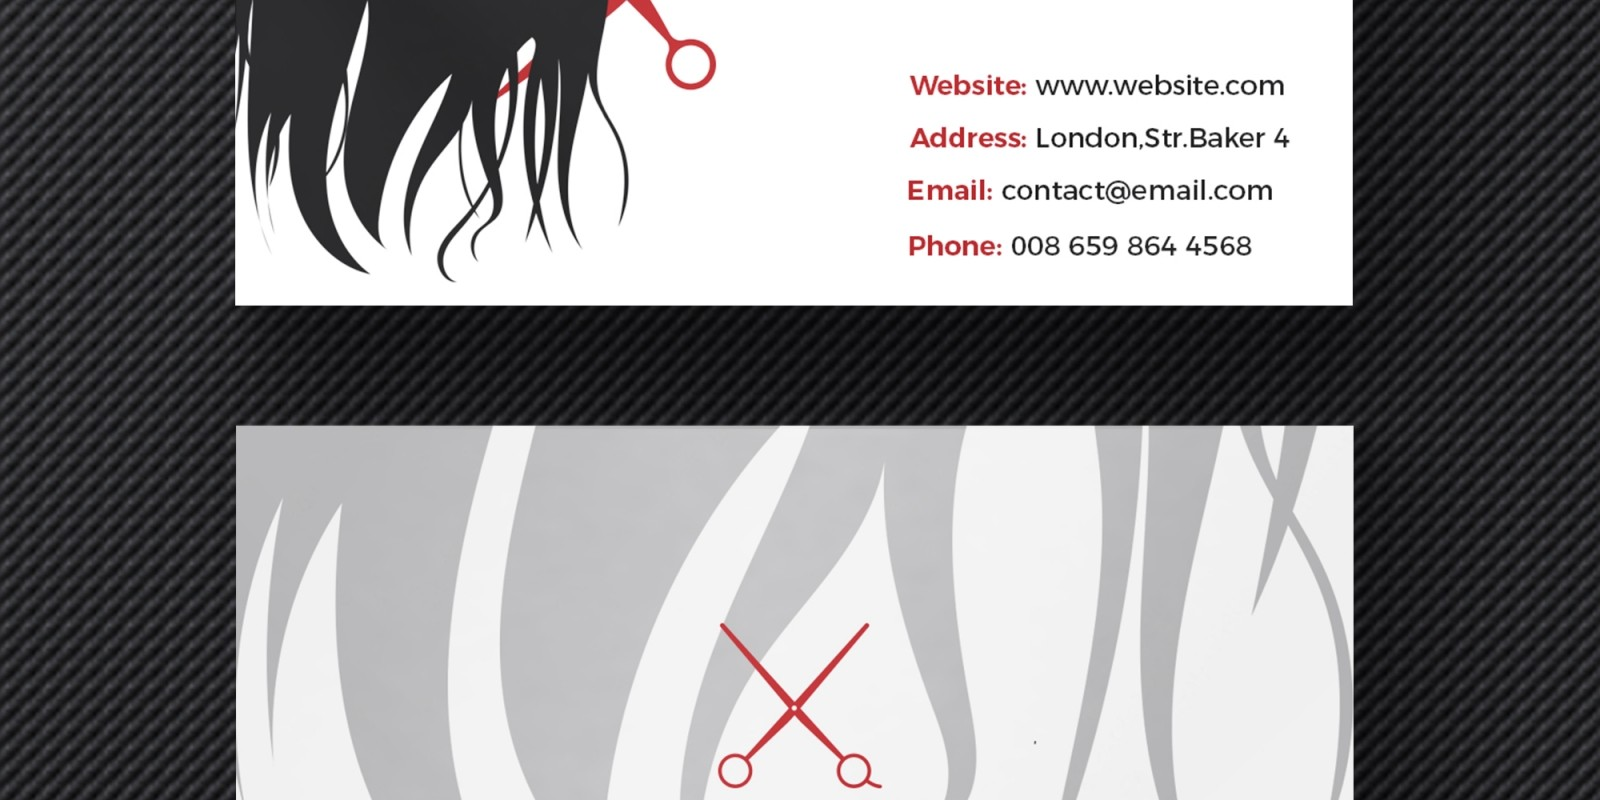 Hair salon business card